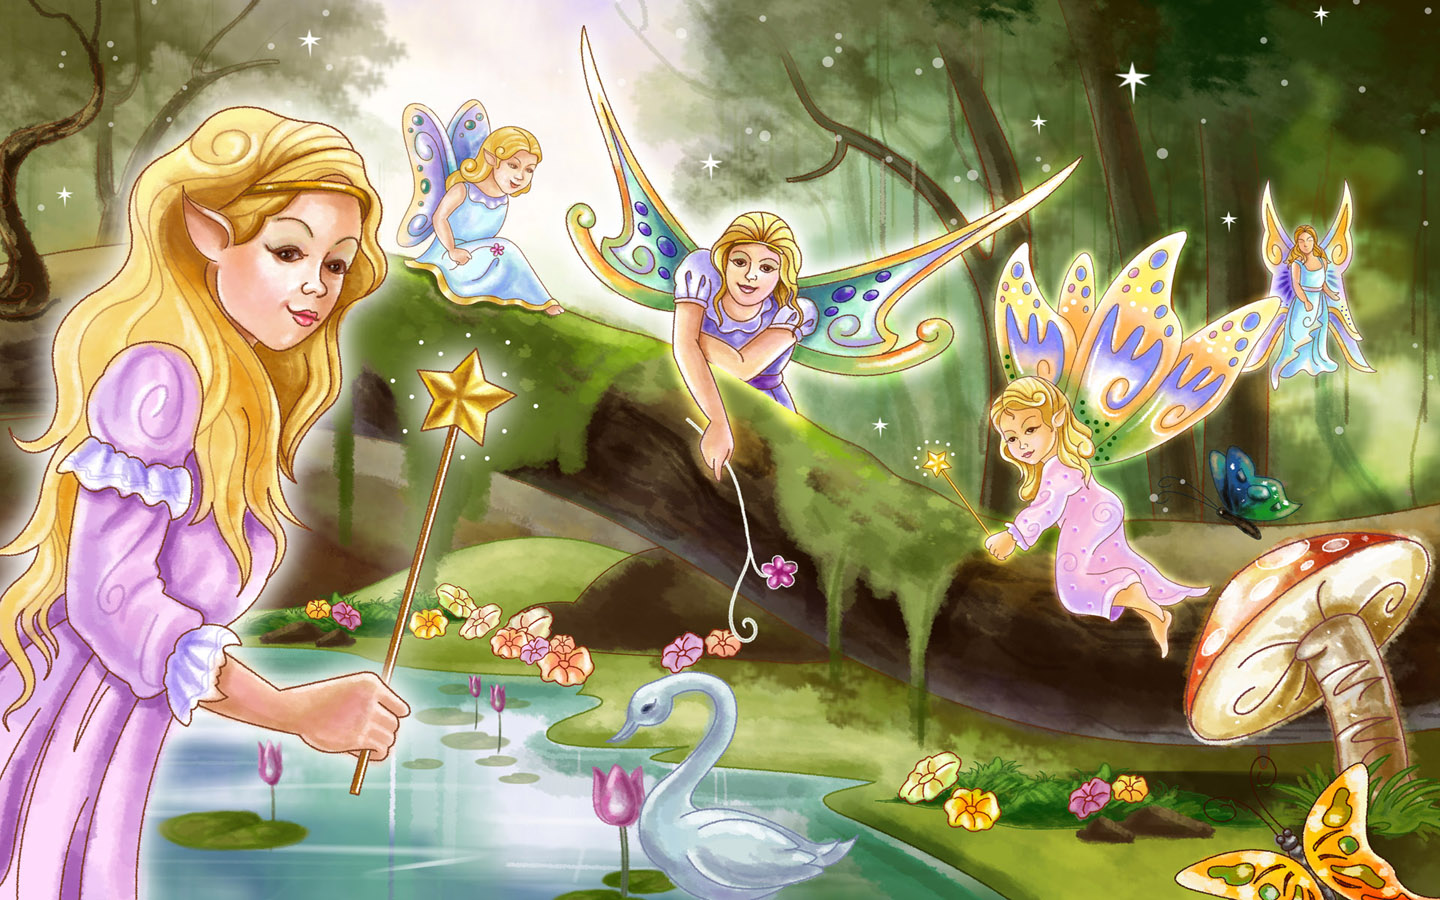 Fairy tale world wallpaper Wallpapers   HD Wallpapers 89082 1440x900